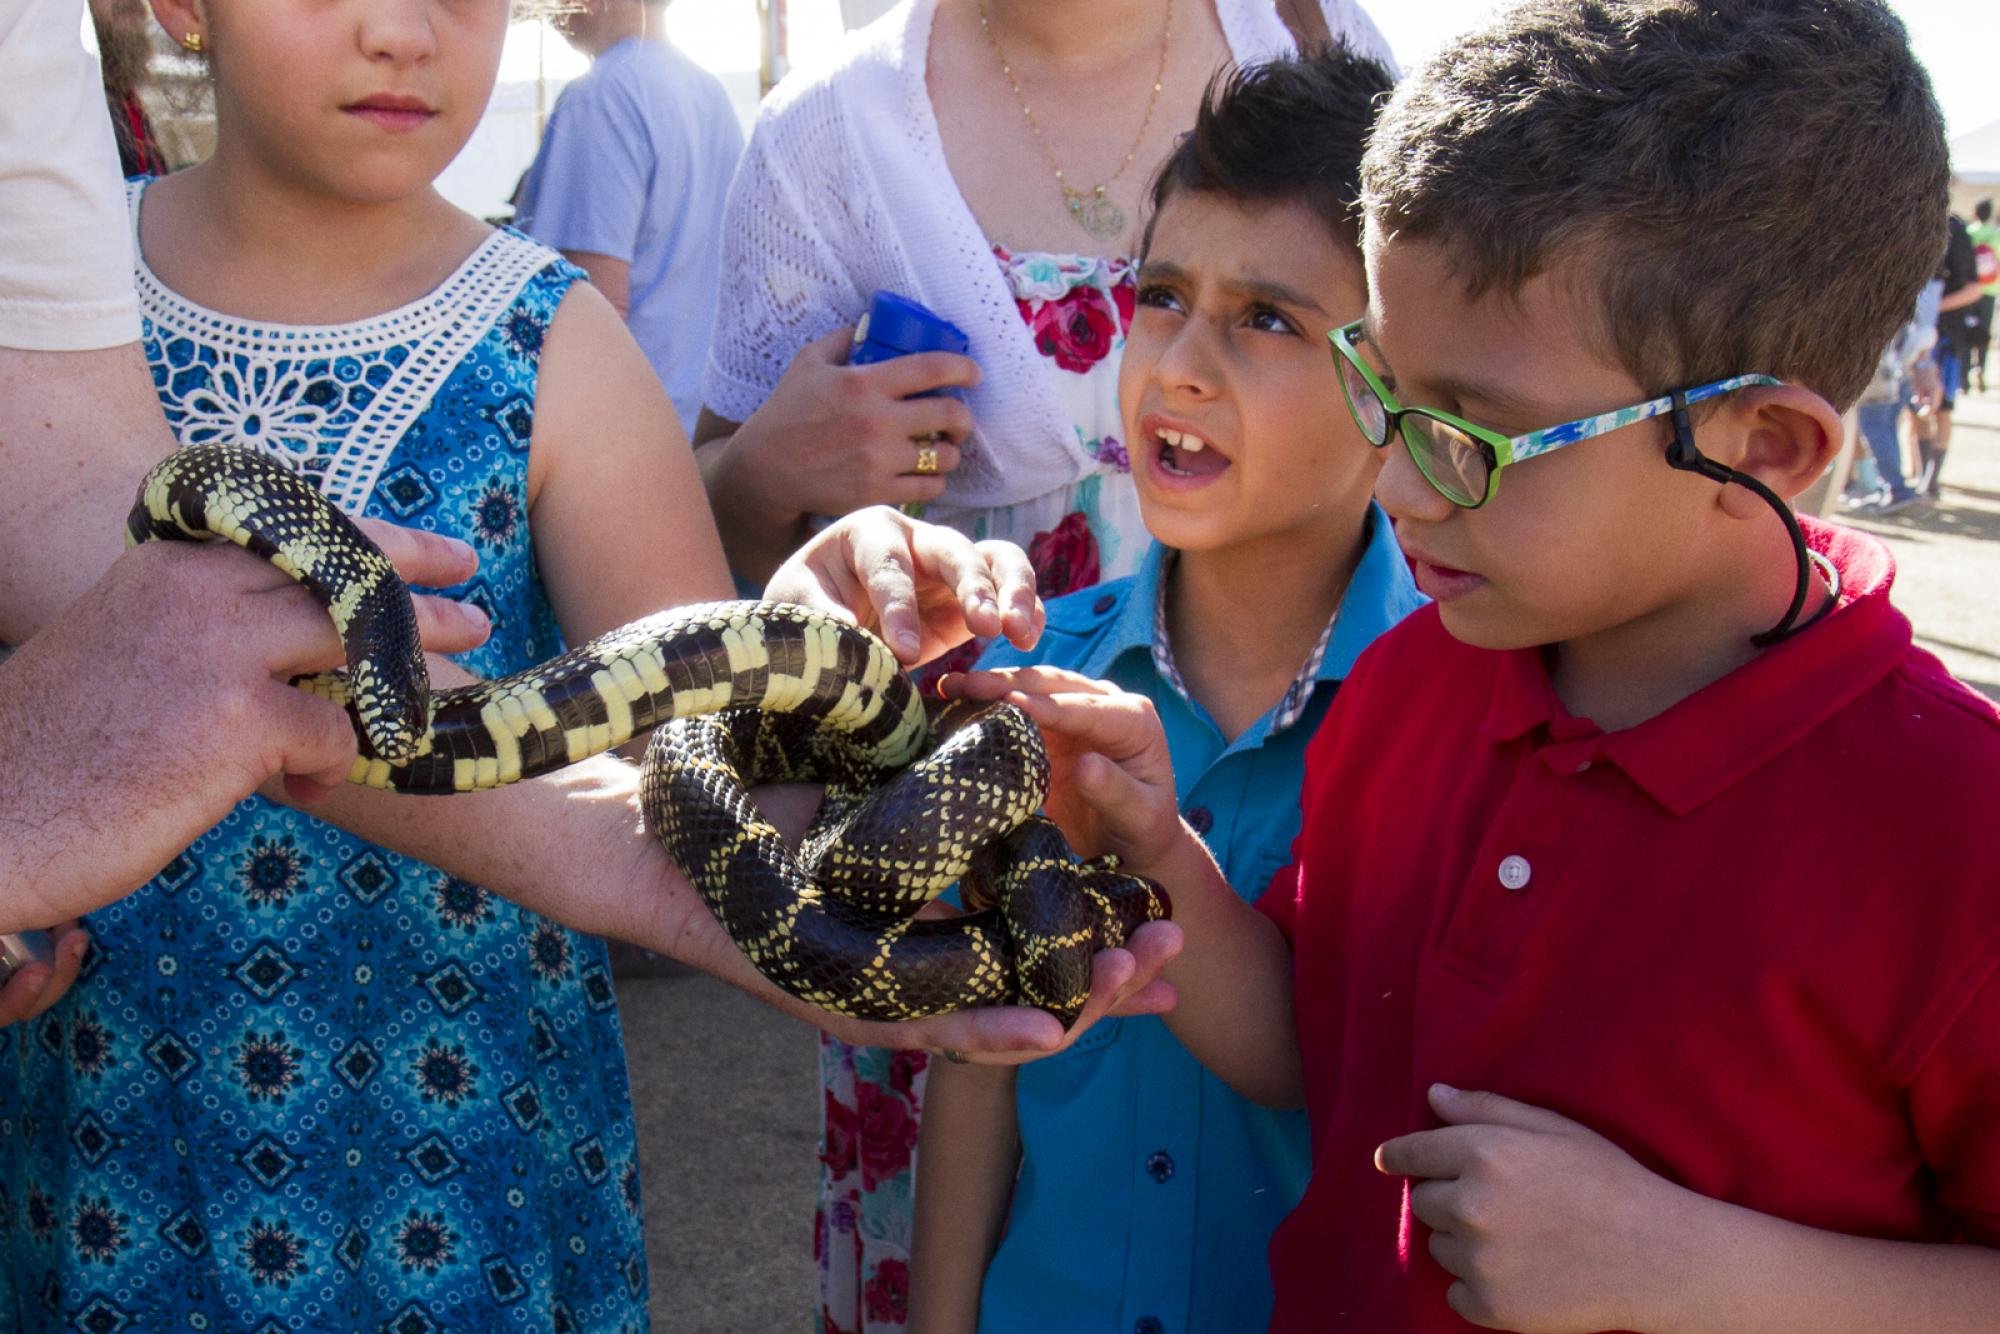 Yousif Mustafa and Yousif Darweesh with a friendly king snake